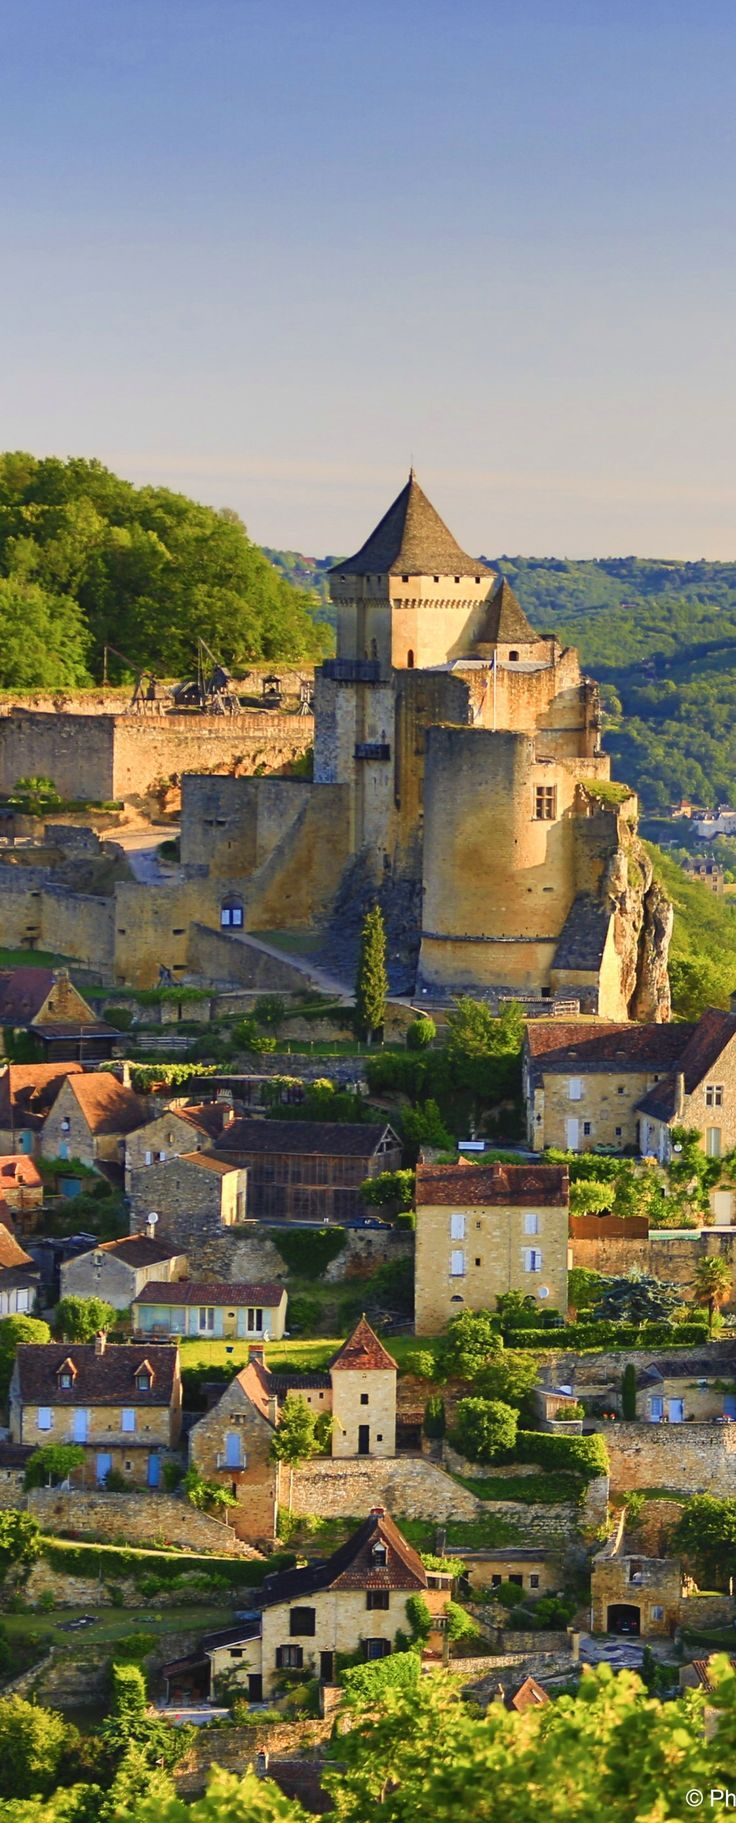 Travel Inspiration for France - Castelnaud-la-Chapelle, en Dordogne, France